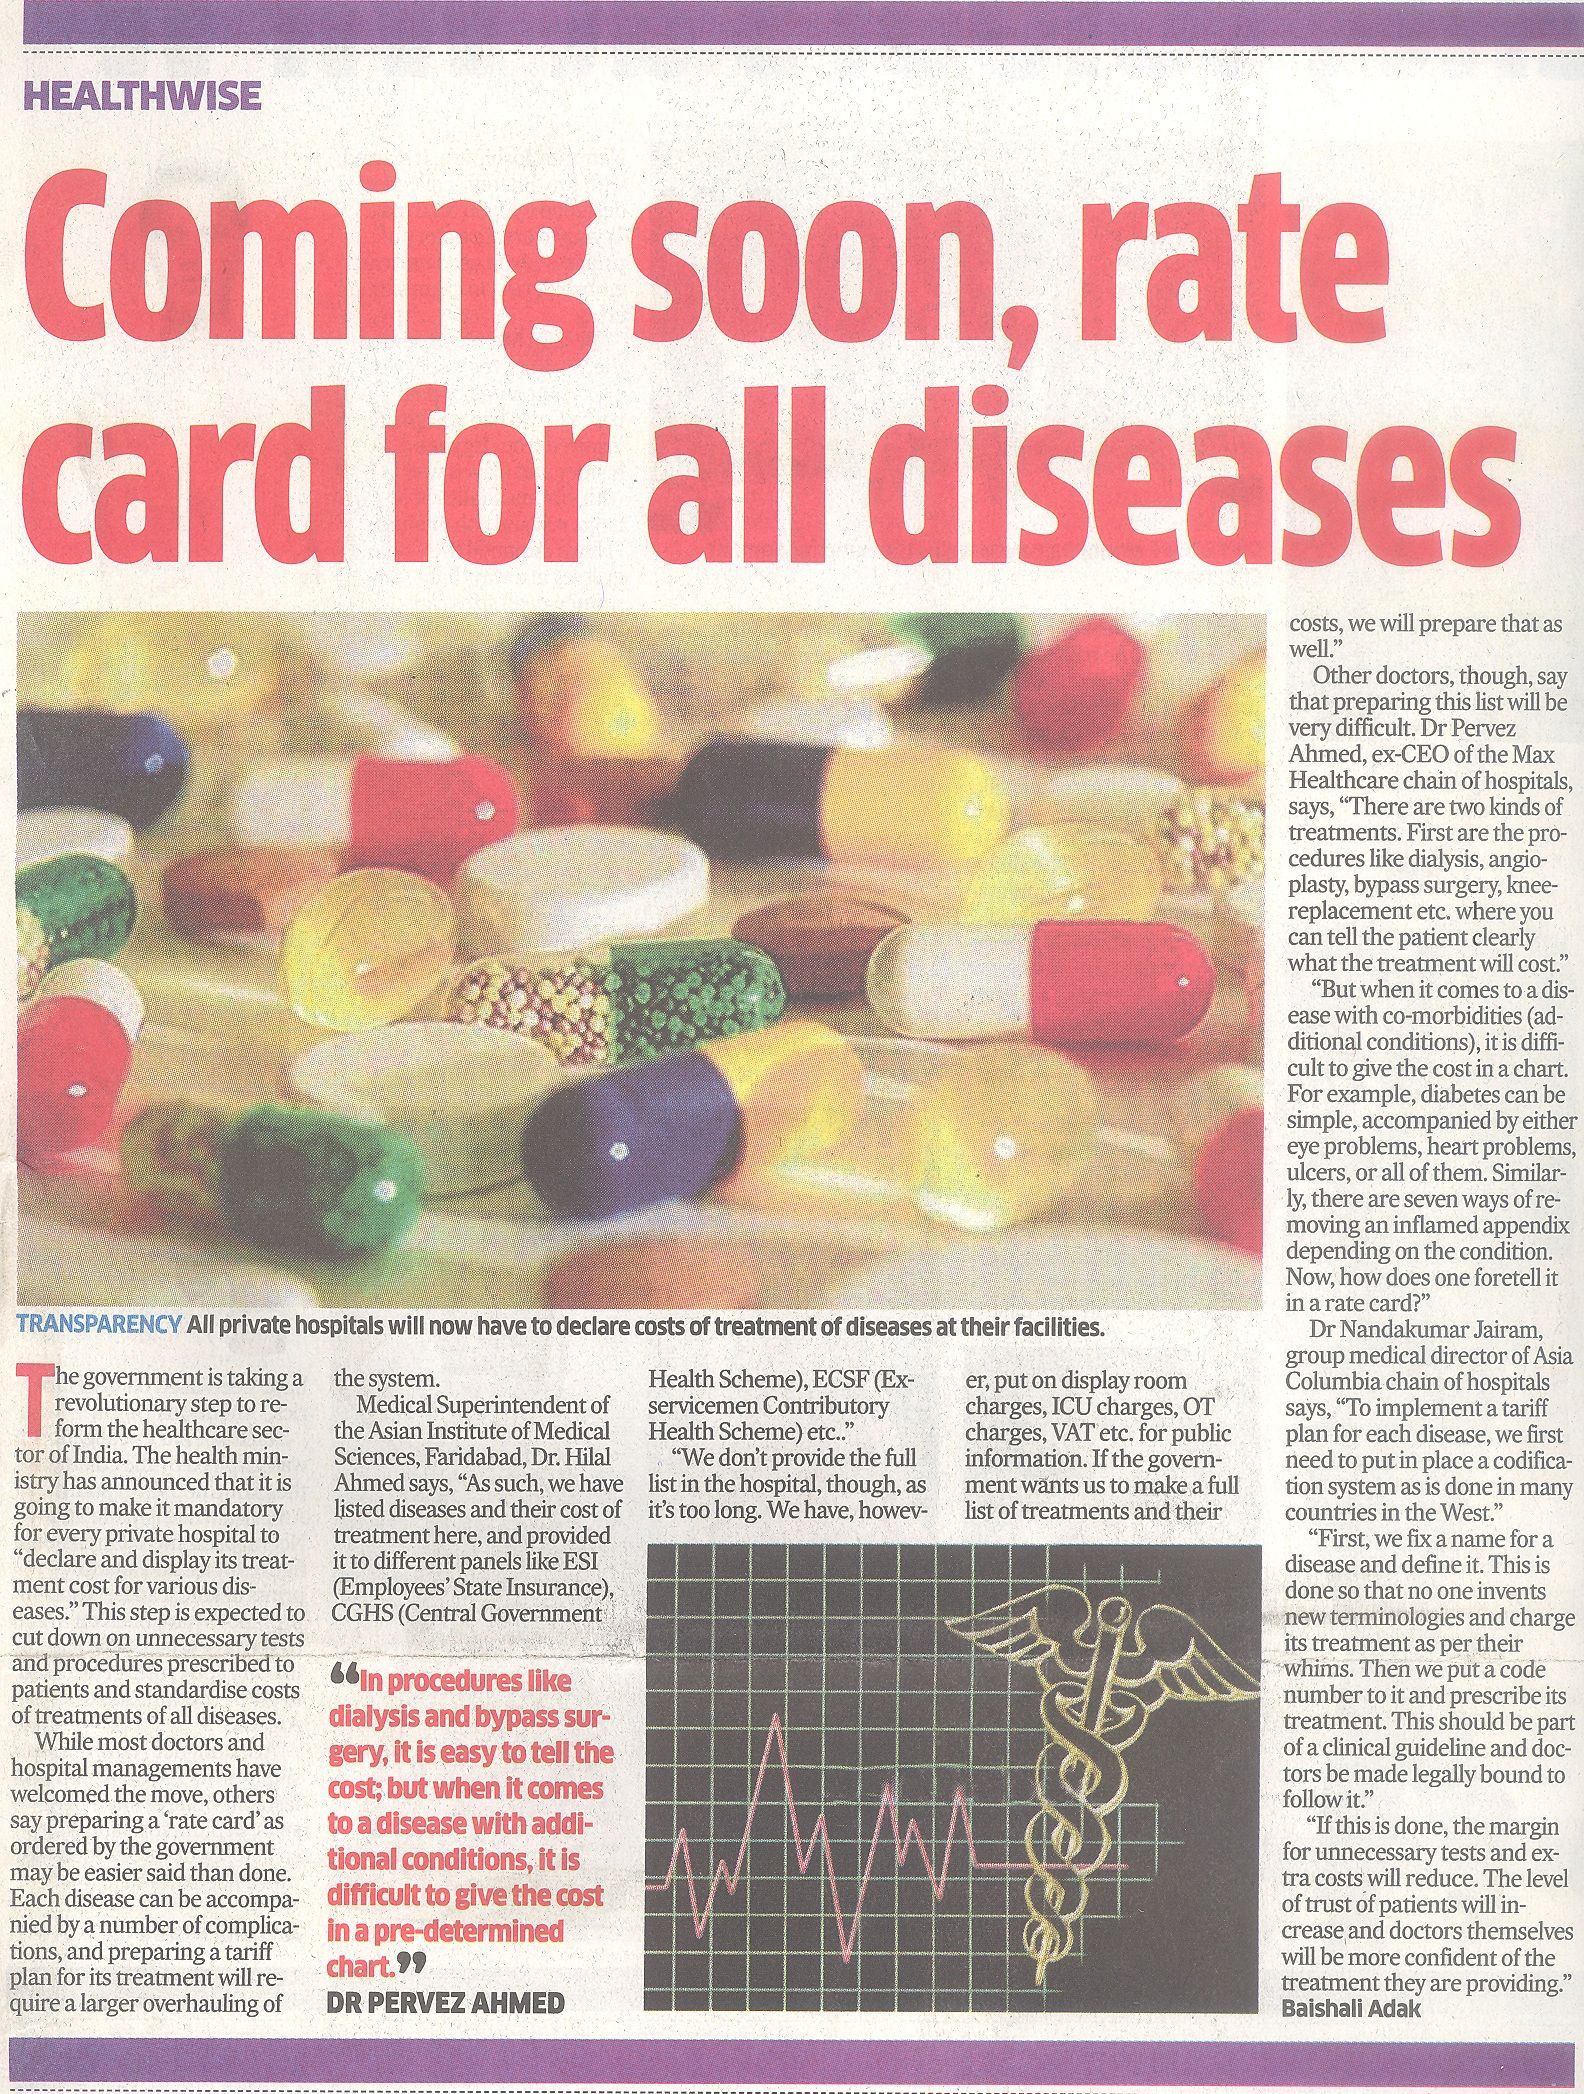 Urgent Care Rate Card For All Diseases About To Launch